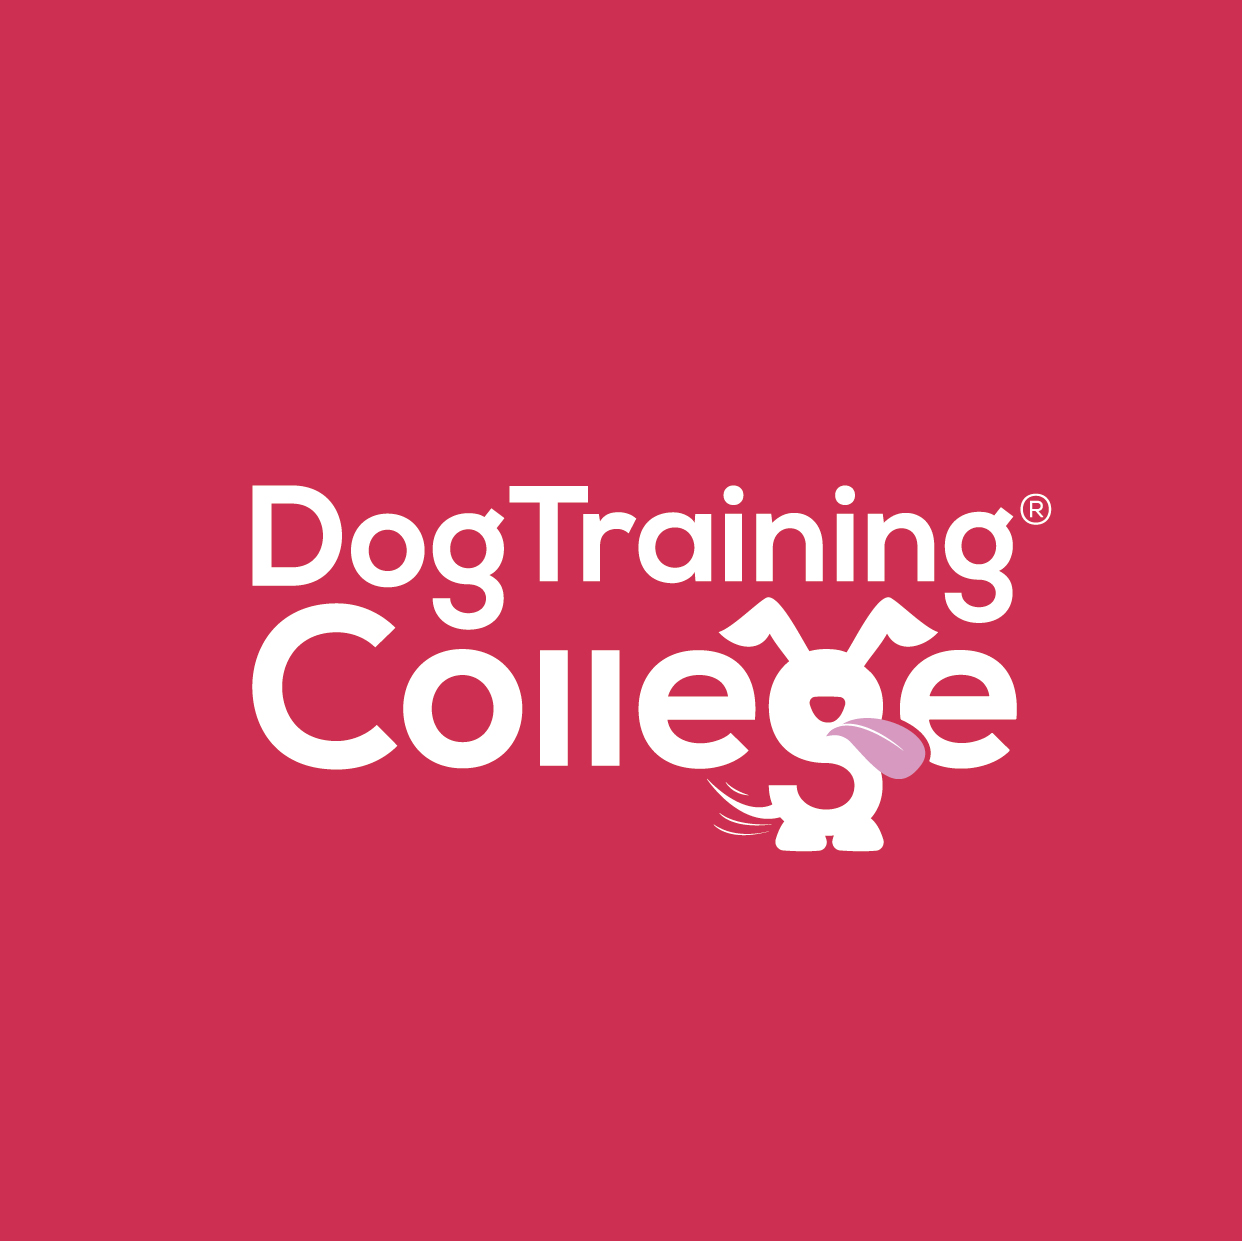 Dog Training College Brand Guidelines 2019-06.jpg